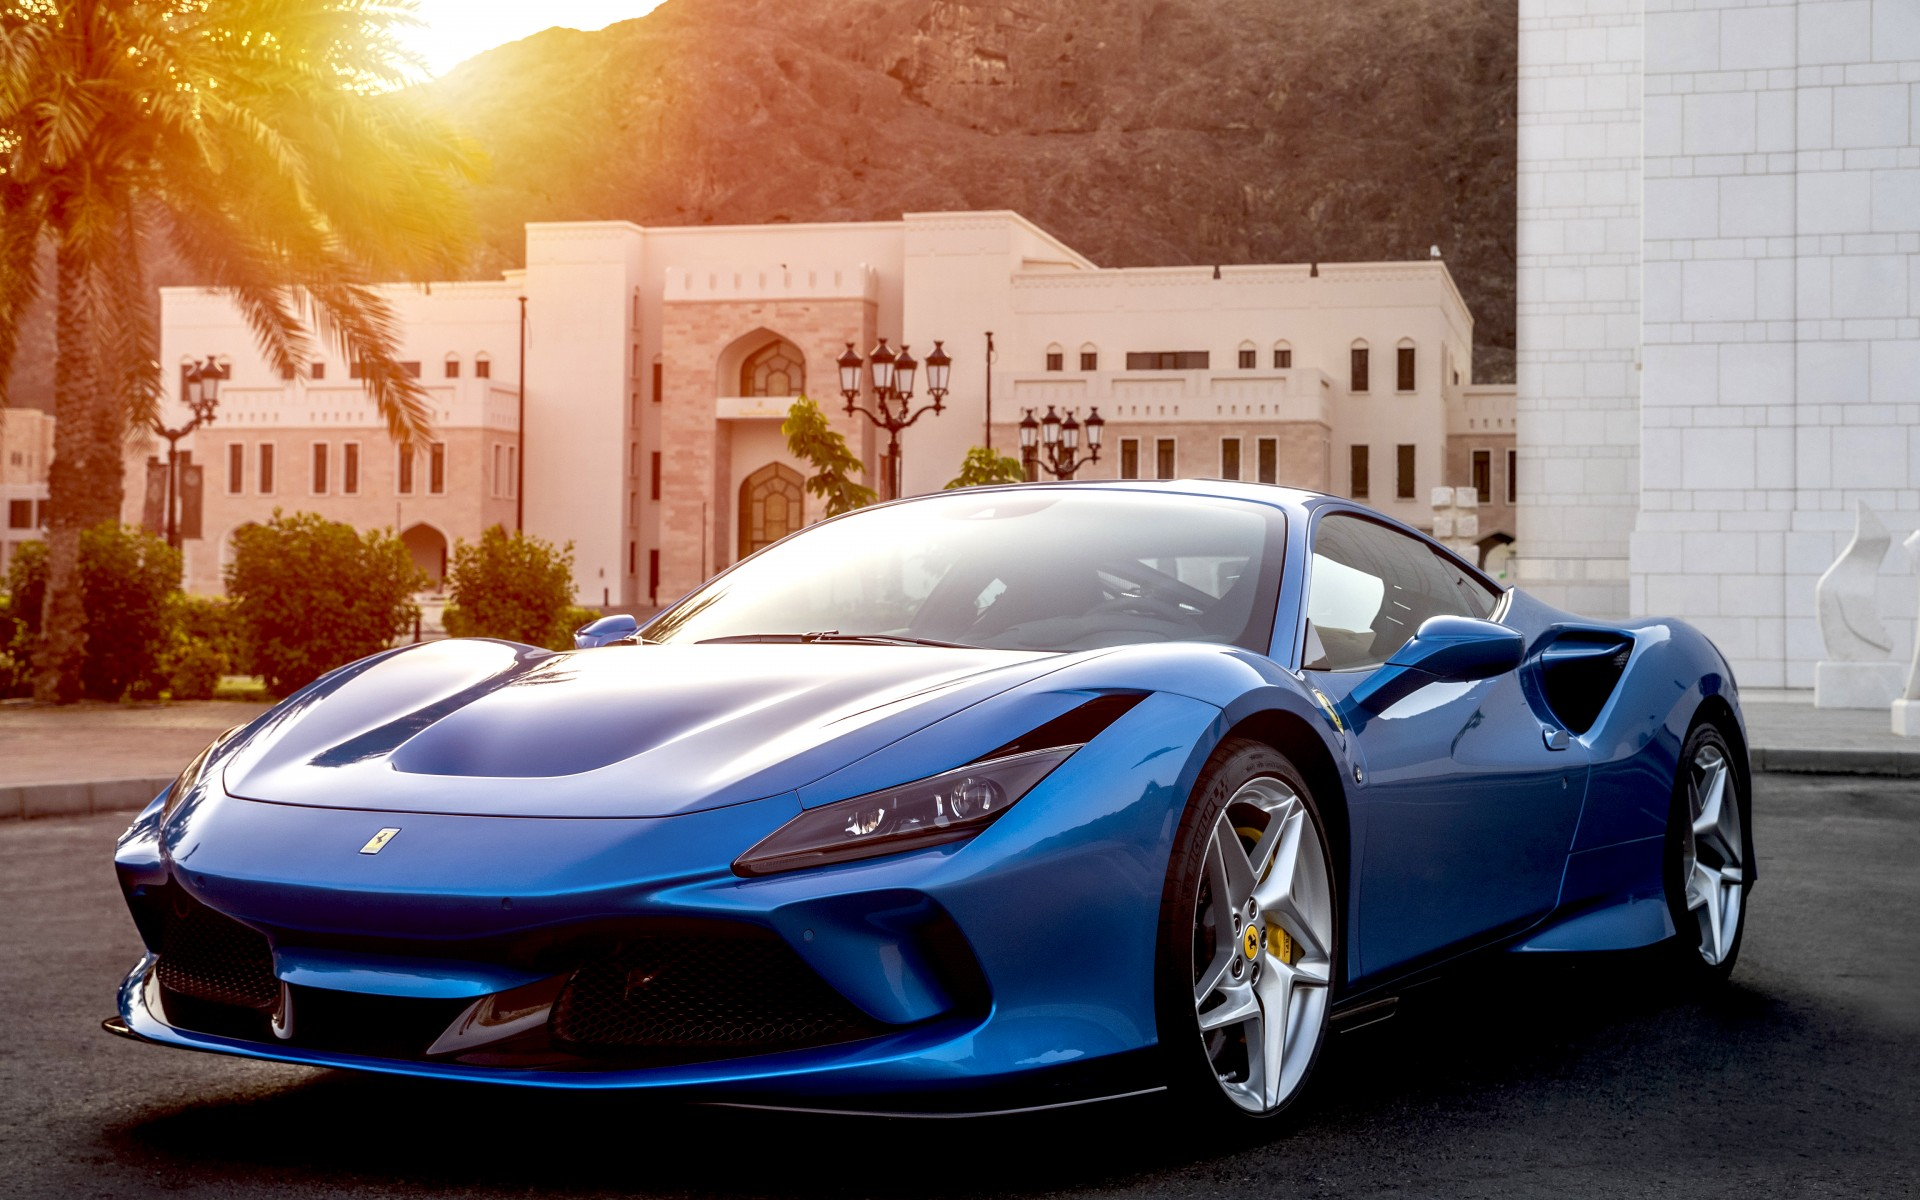 Ferrari F8 Tributo Car Hd Wallpapers For Desktop